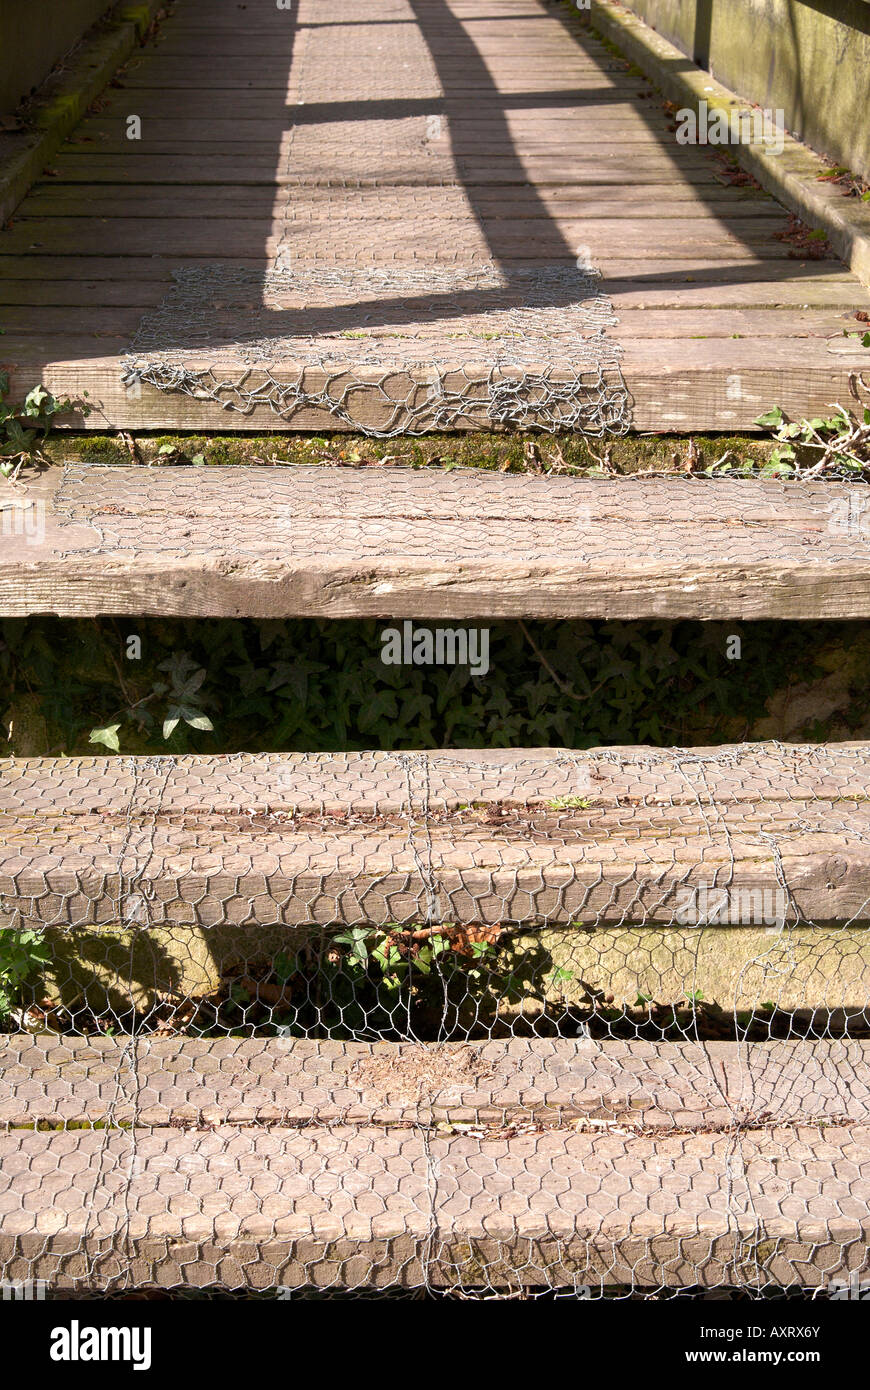 Wooden Steps To A Small Footbridge With Chicken Wire Used To Provide